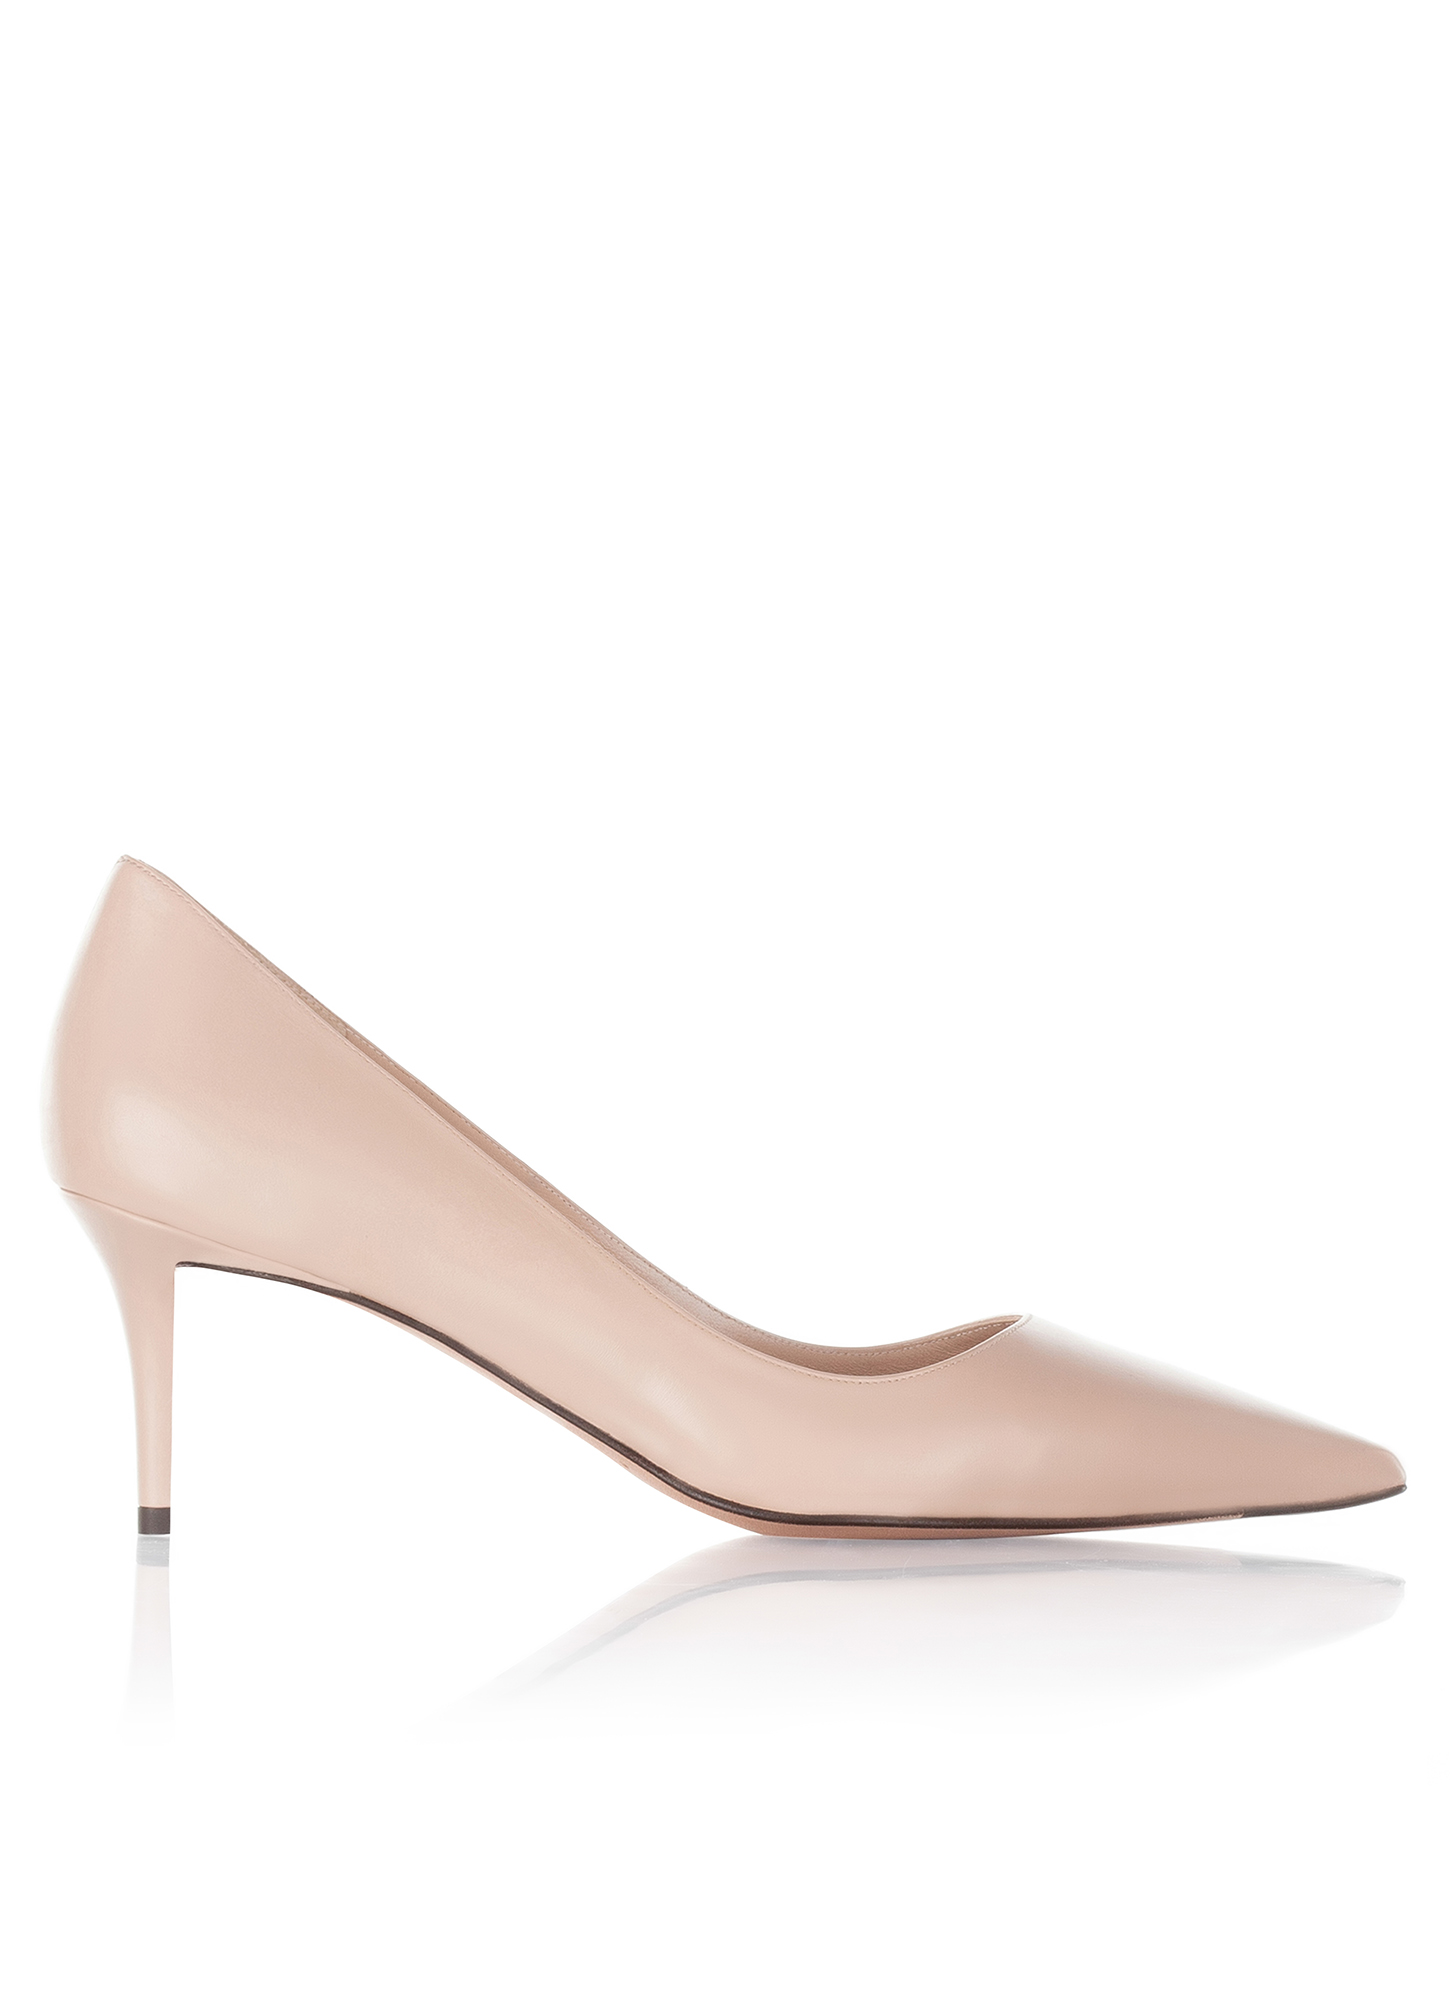 Mid heel pumps Pura Lopez in nude leather · PURA LOPEZ